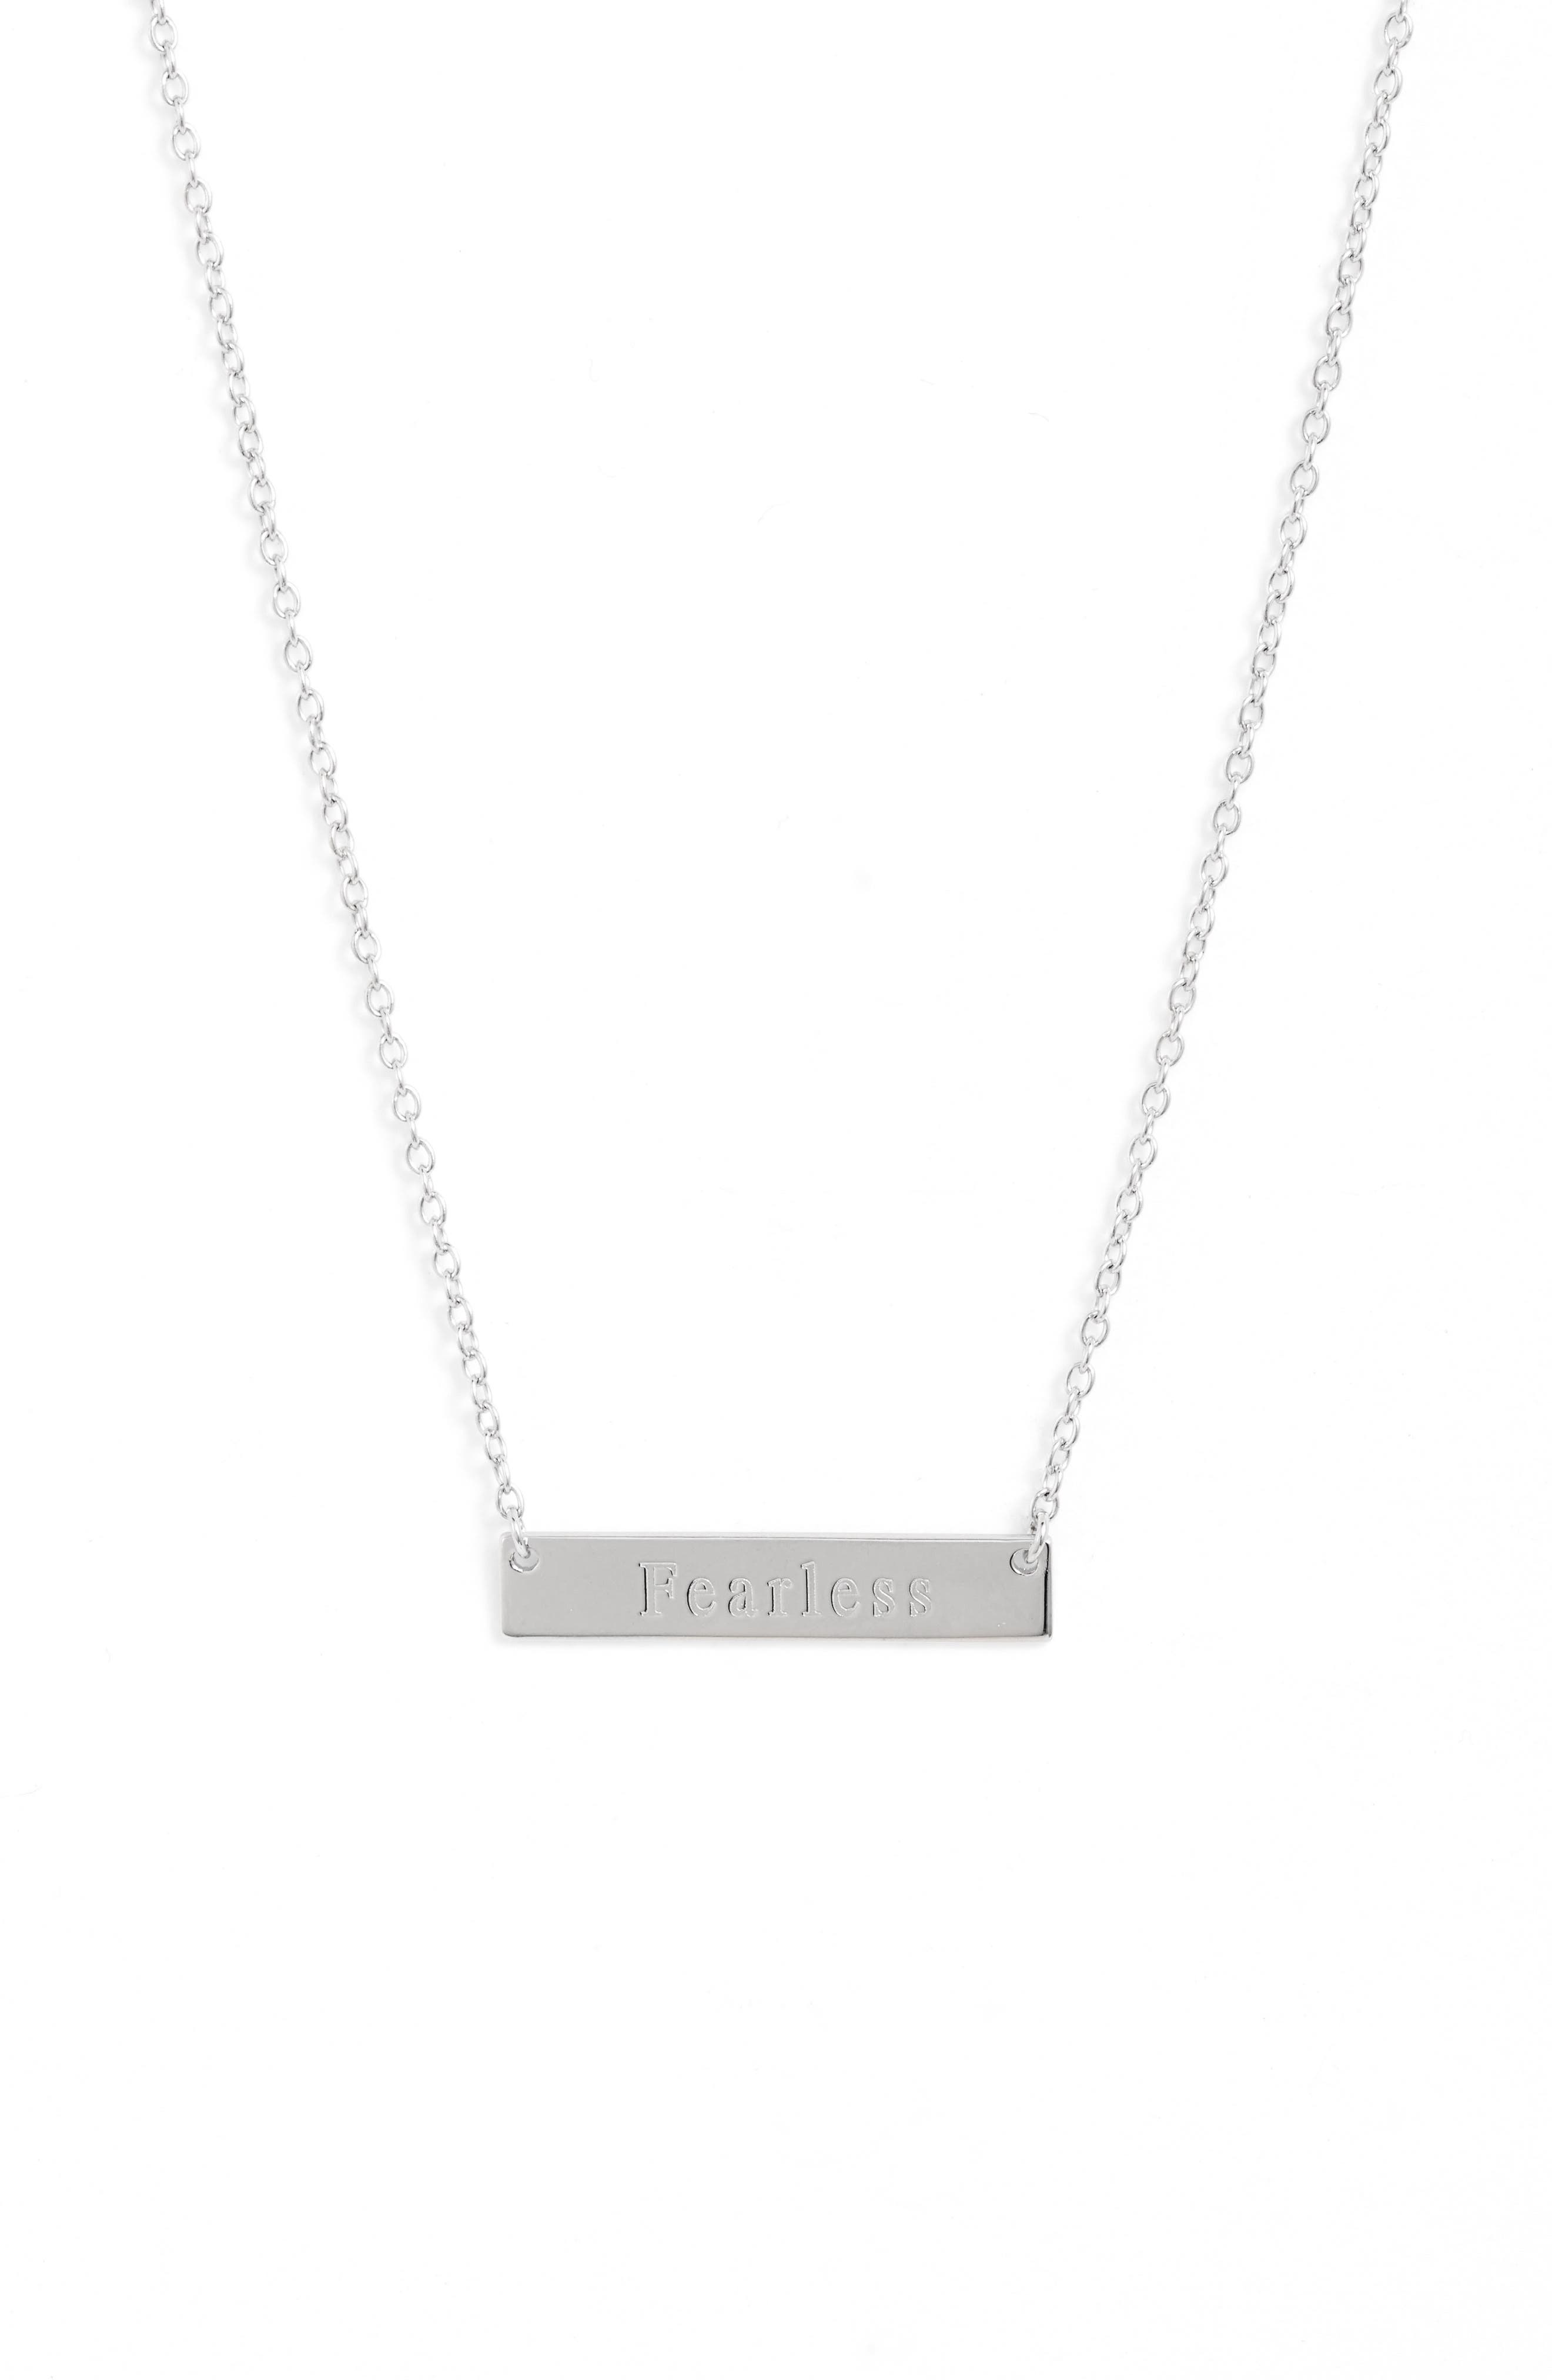 A simple design featuring a gleaming bar pendant embossed with an inspiring message defines this understated necklace. Style Name: Sterling Forever Fearless Bar Pendant Necklace. Style Number: 5904764. Available in stores.